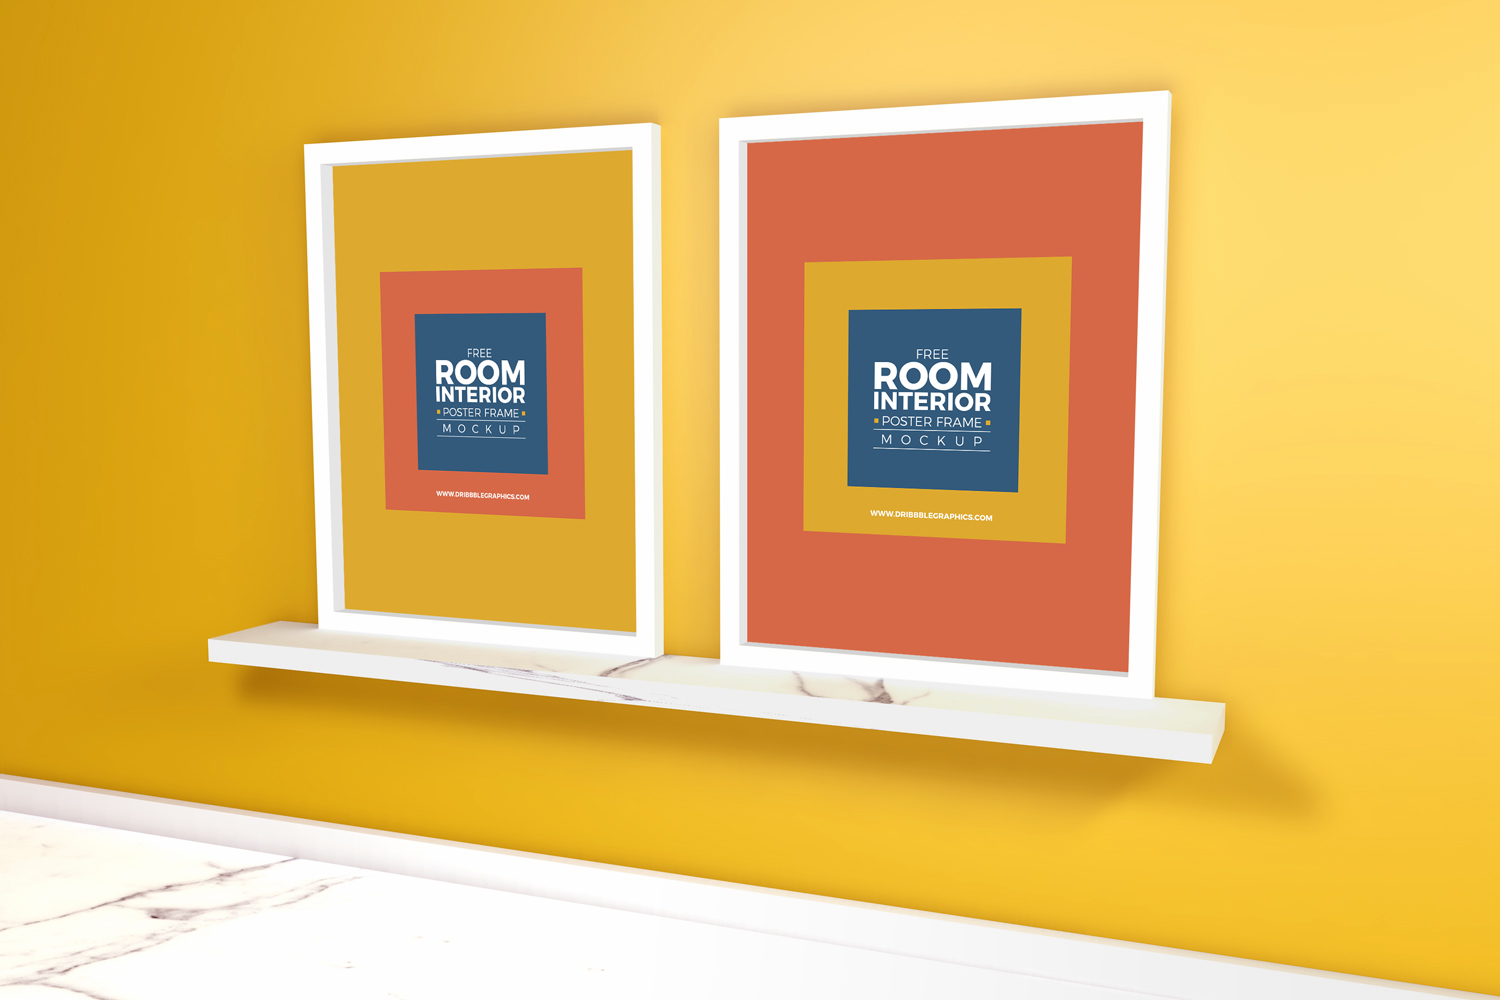 Free-Room-Interior-With-Marble-Floor-Poster-Frame-Mockup